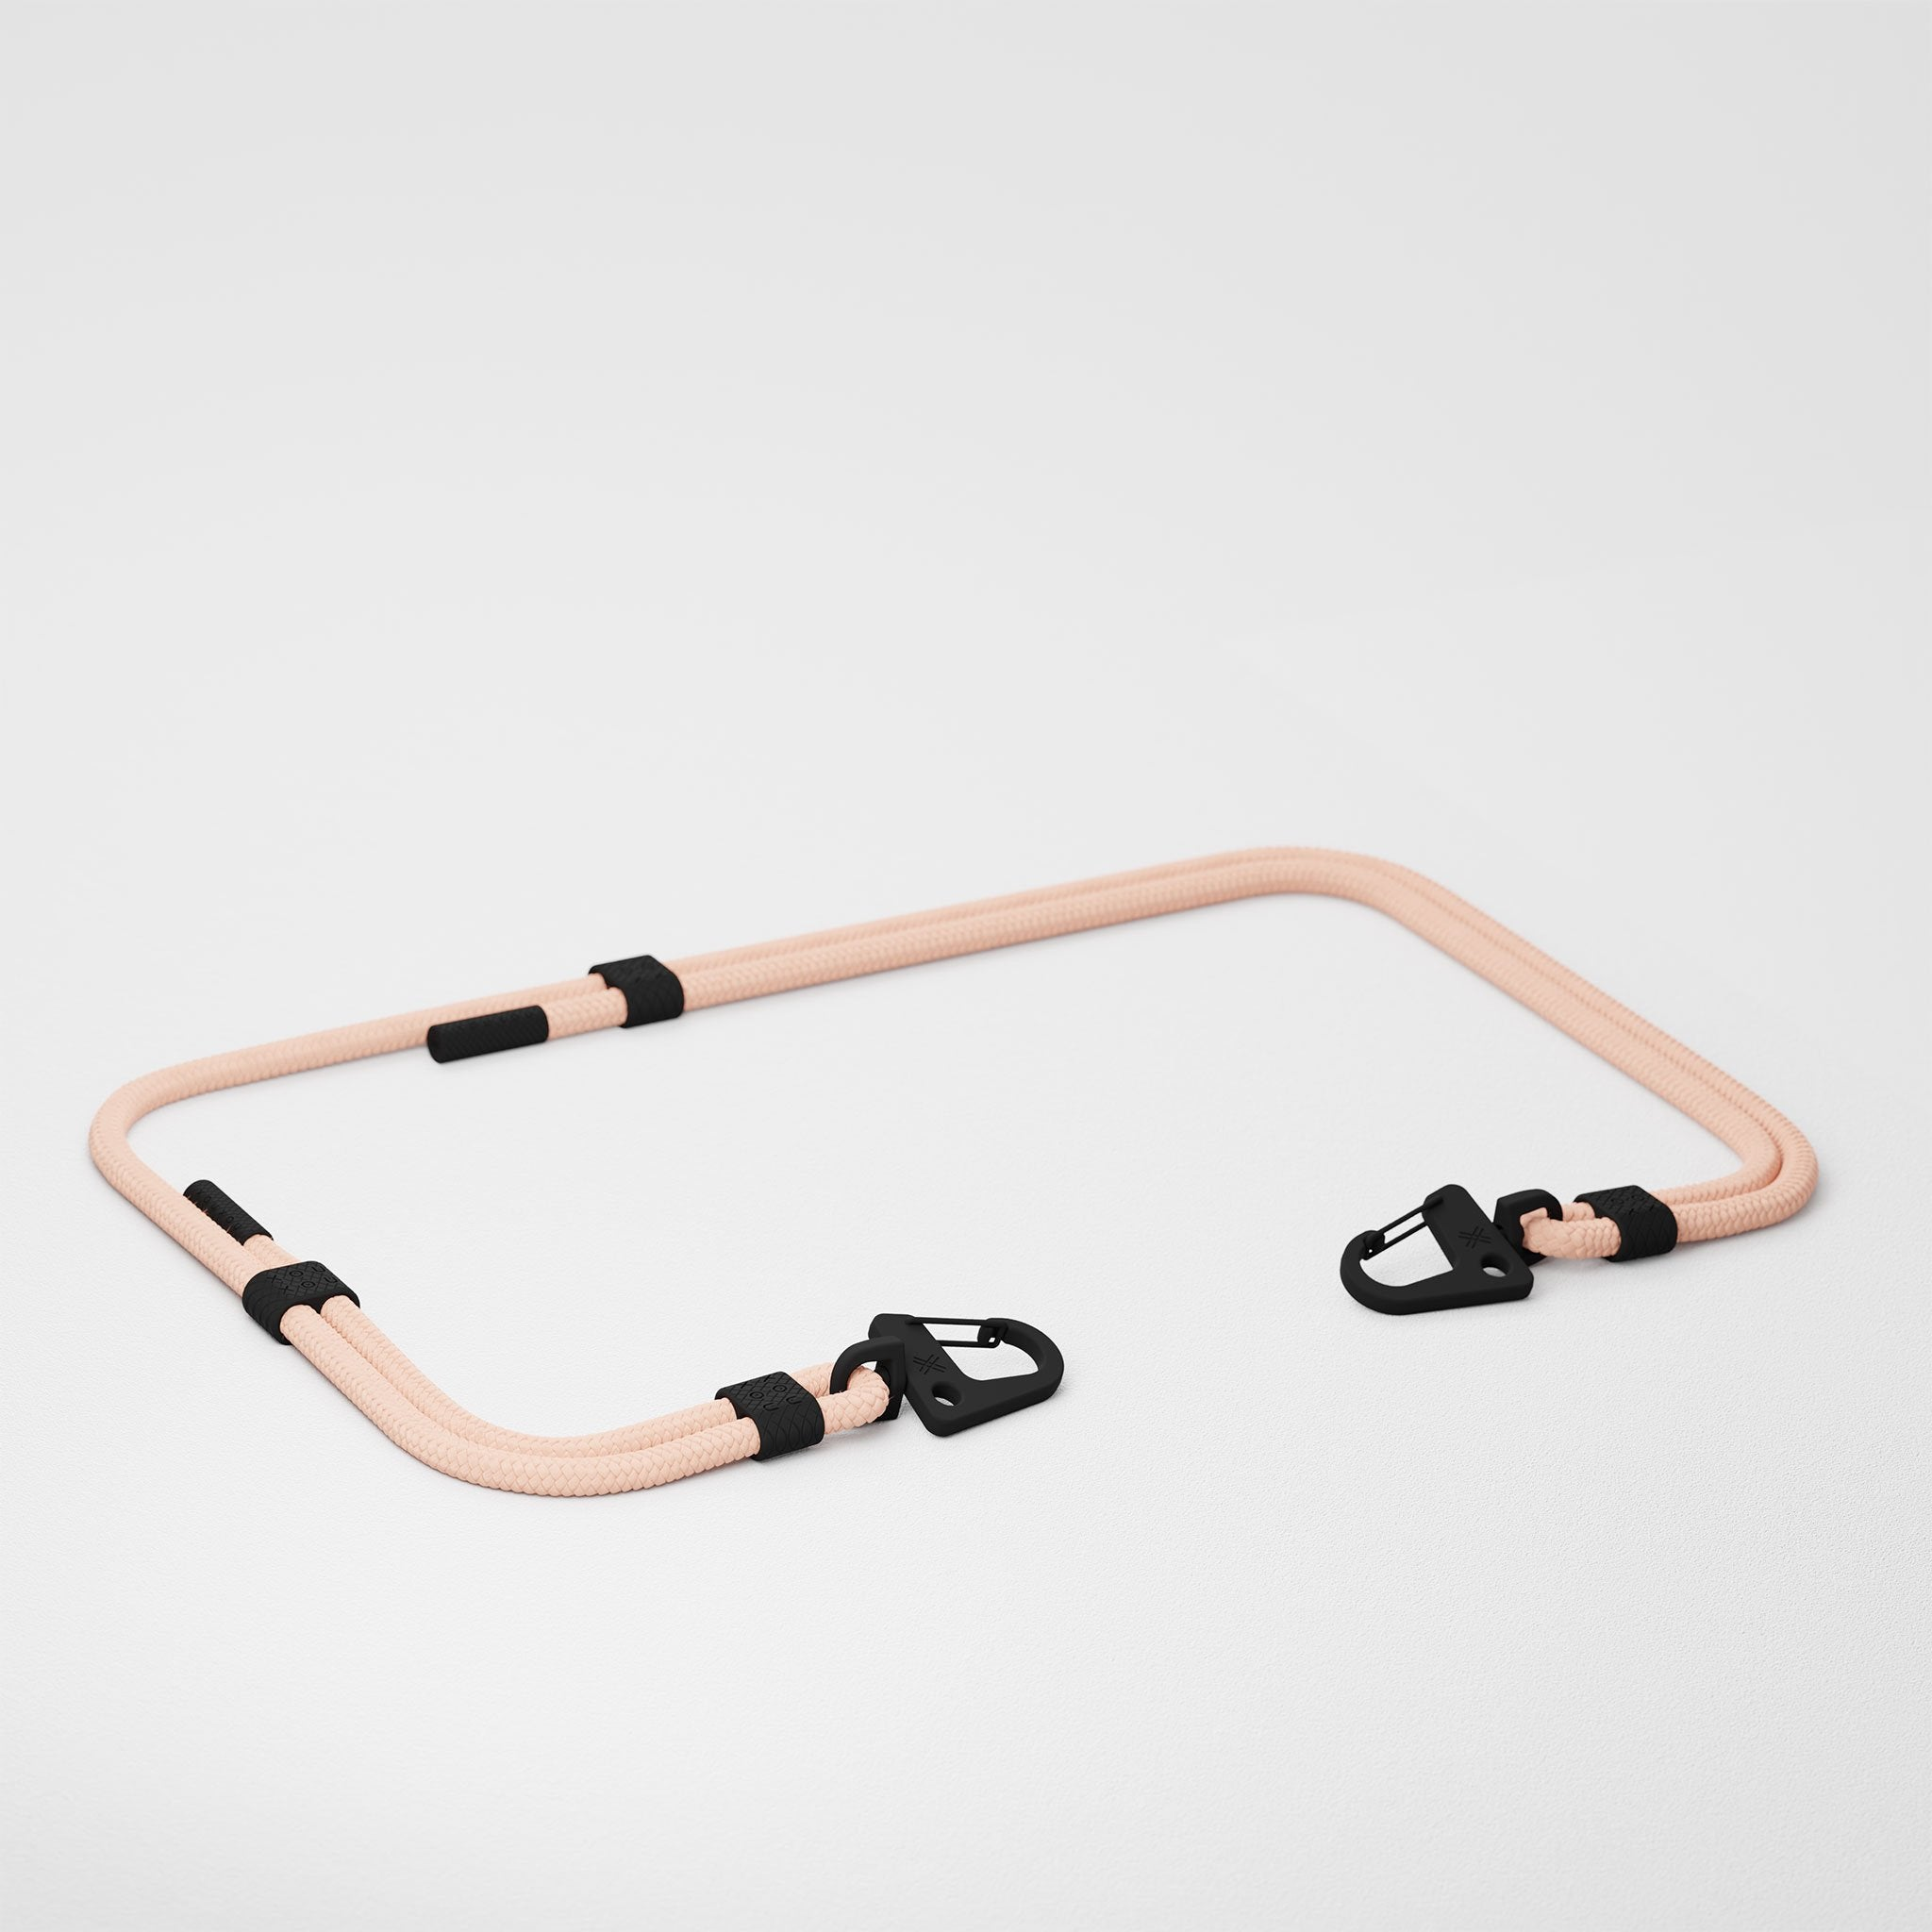 Powder Pink Carabiner Rope